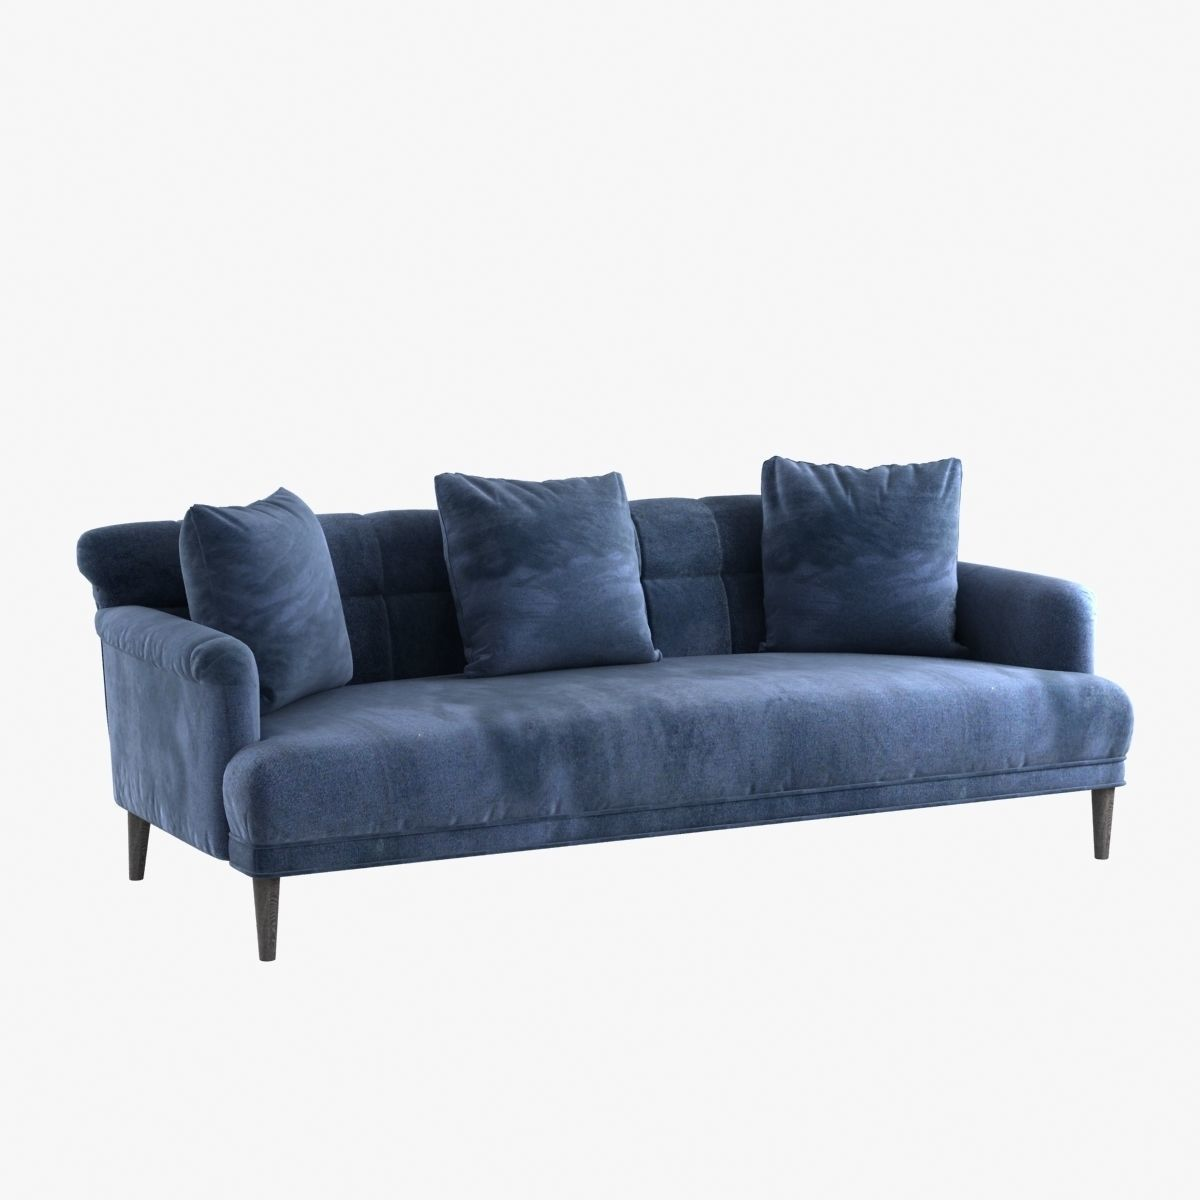 Made Sofa Velvet Custom Made Blue Velvet Sofa With Pillows 3d Model